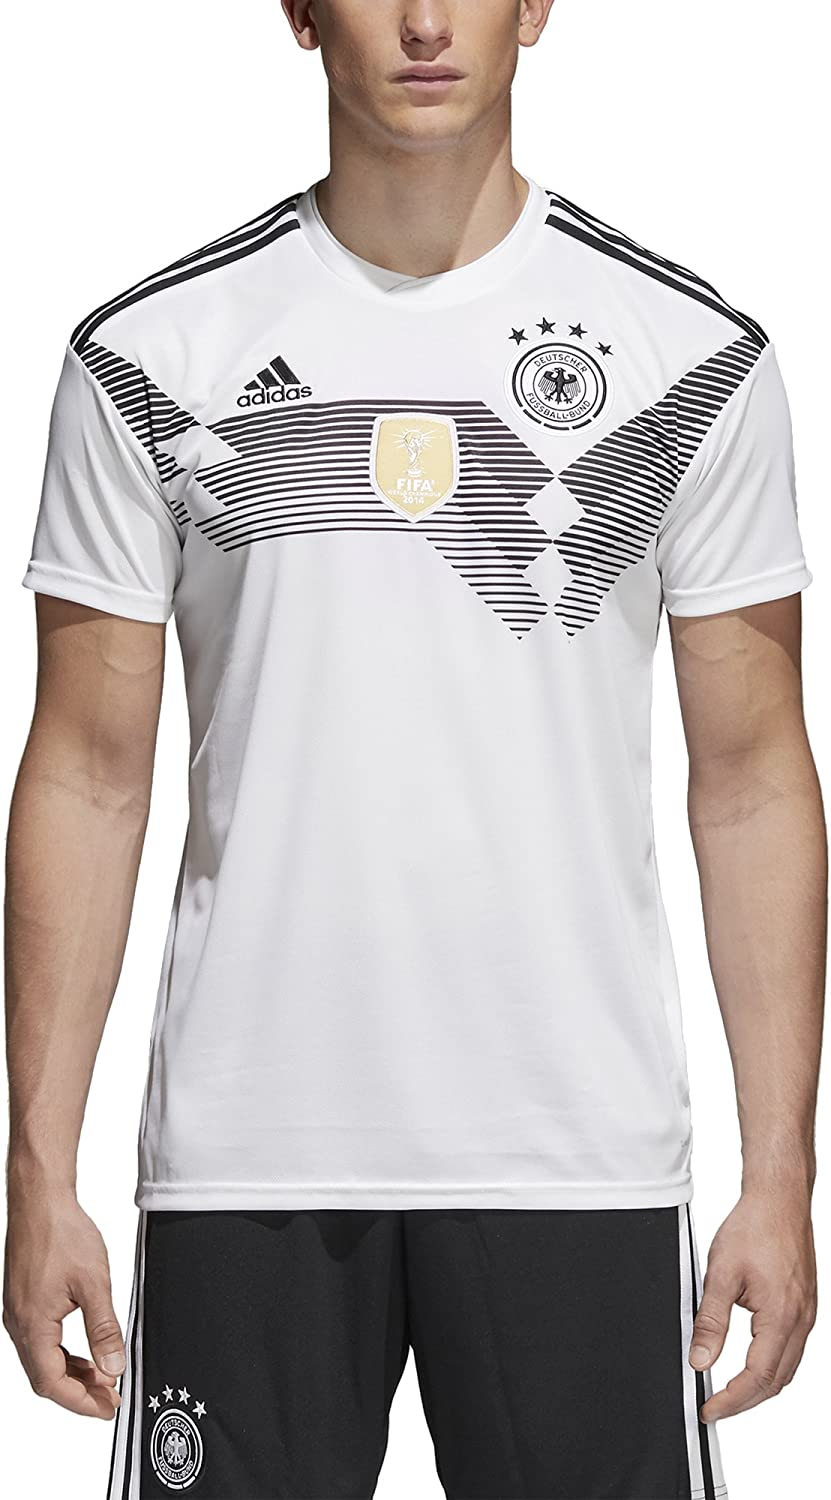 Luminancia Más lejano Desbordamiento  Amazon.com : adidas Germany 2018 Home Replica Jersey : Clothing